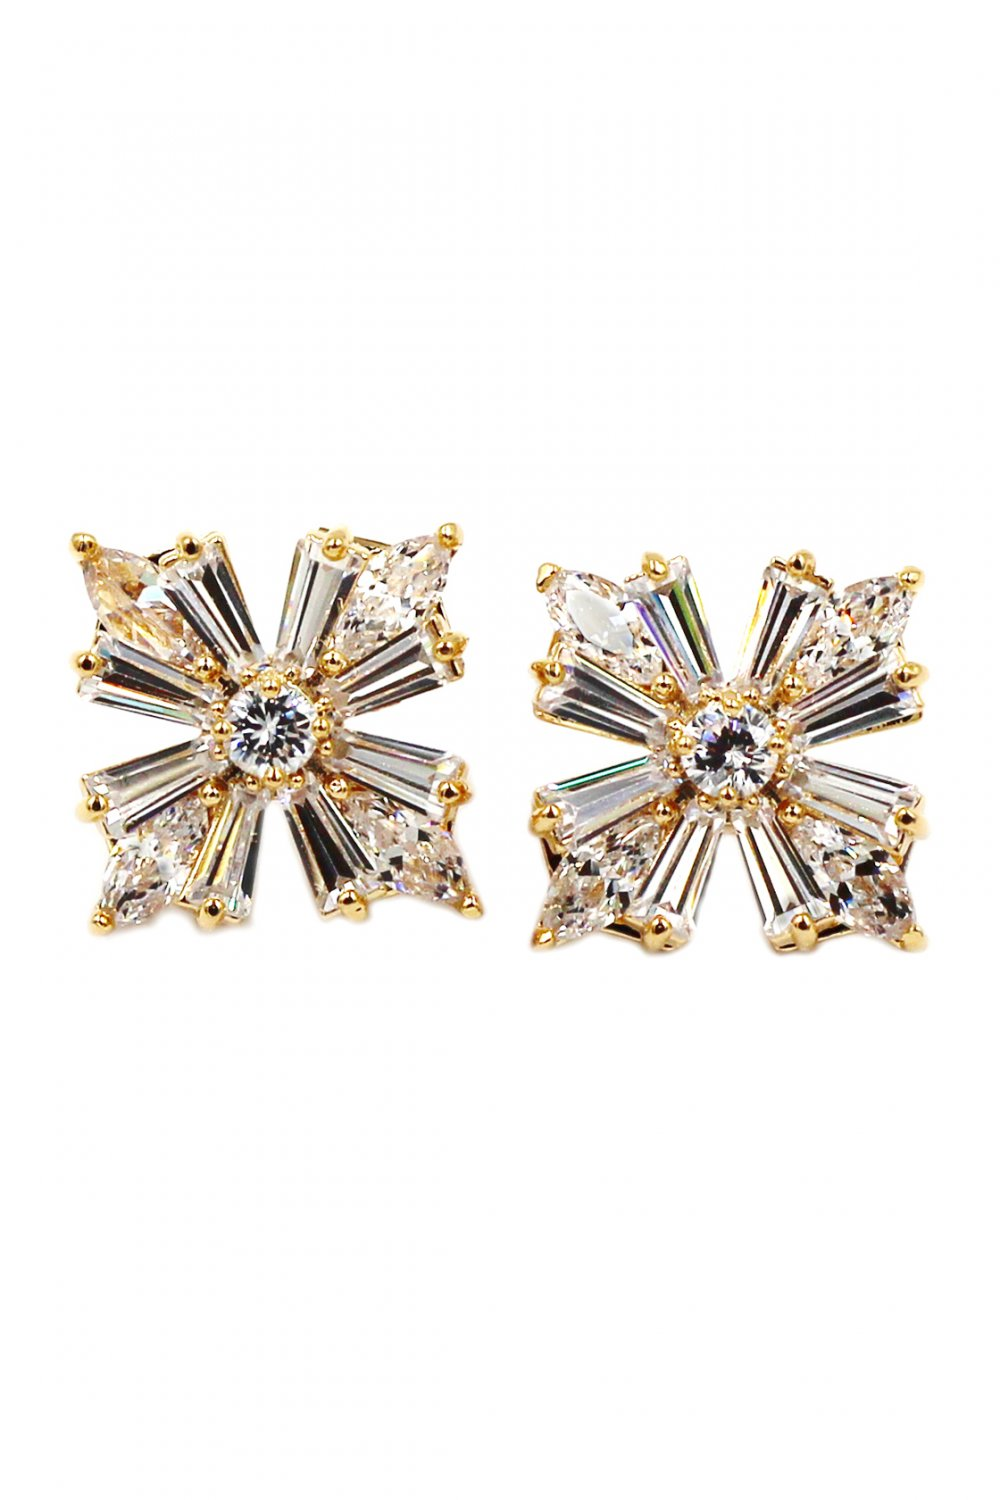 Bright crystal gold earrings